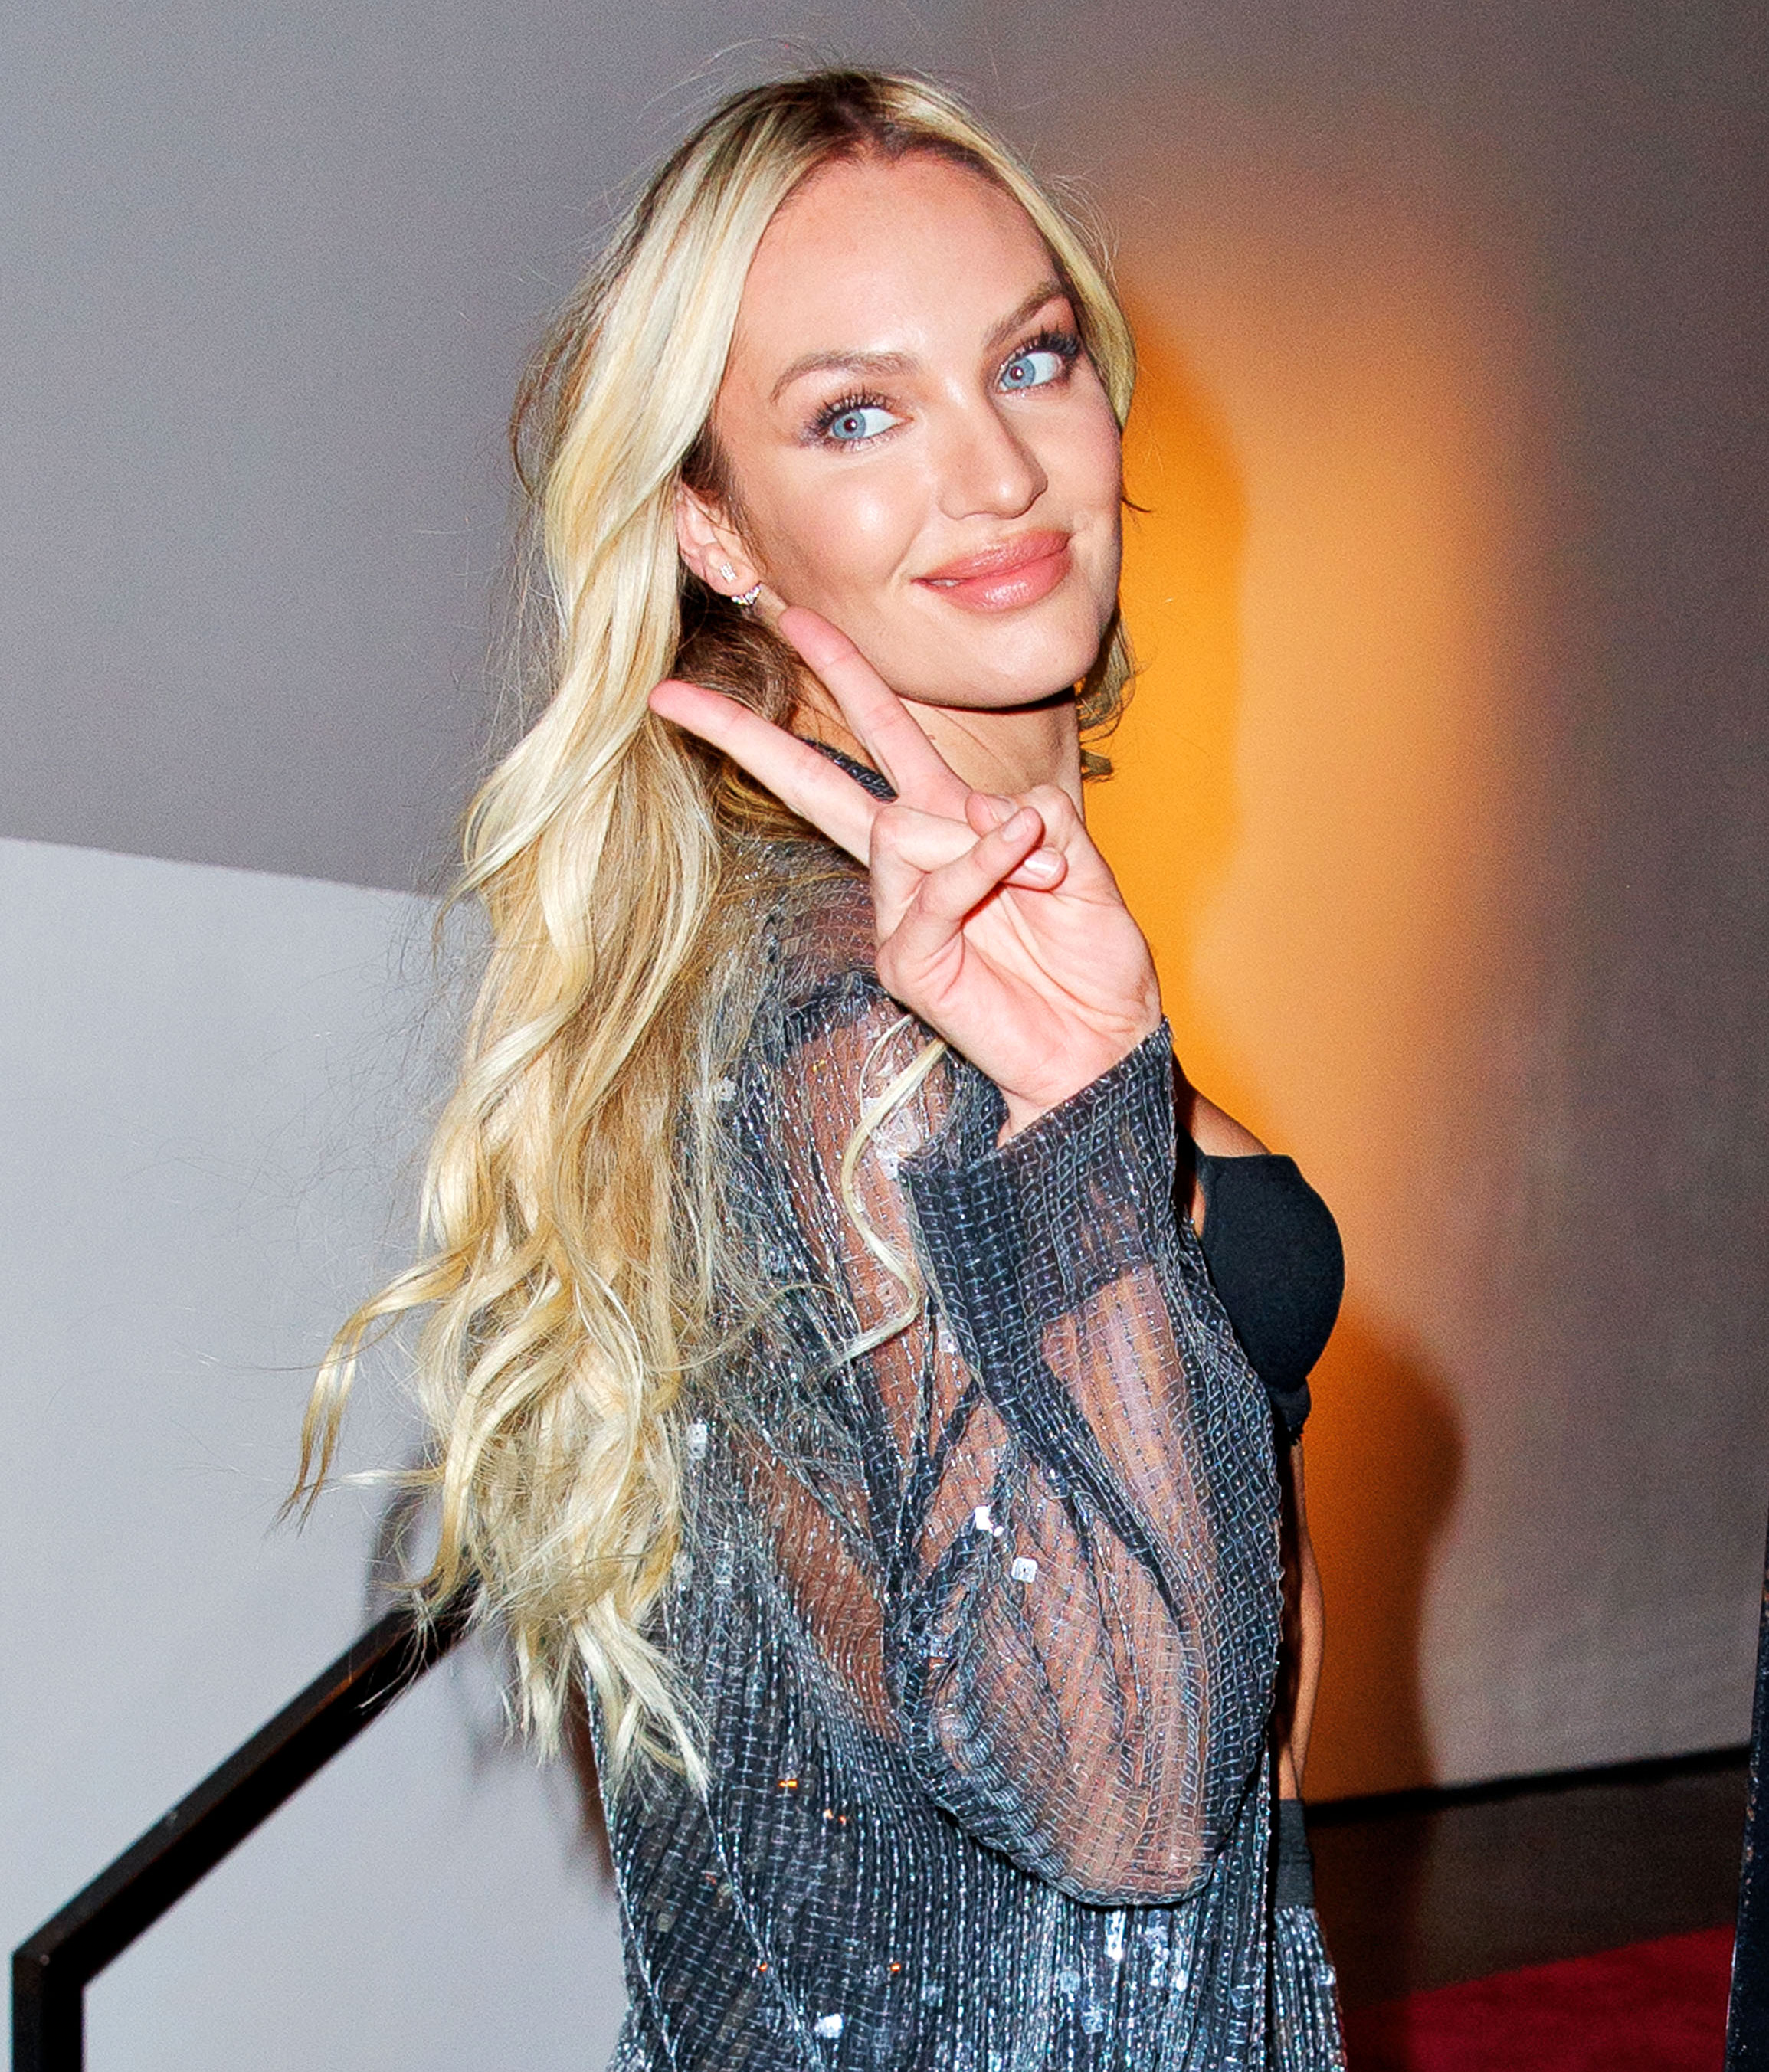 Fotos Candice Swanepoel nude (56 photo), Pussy, Paparazzi, Boobs, butt 2017